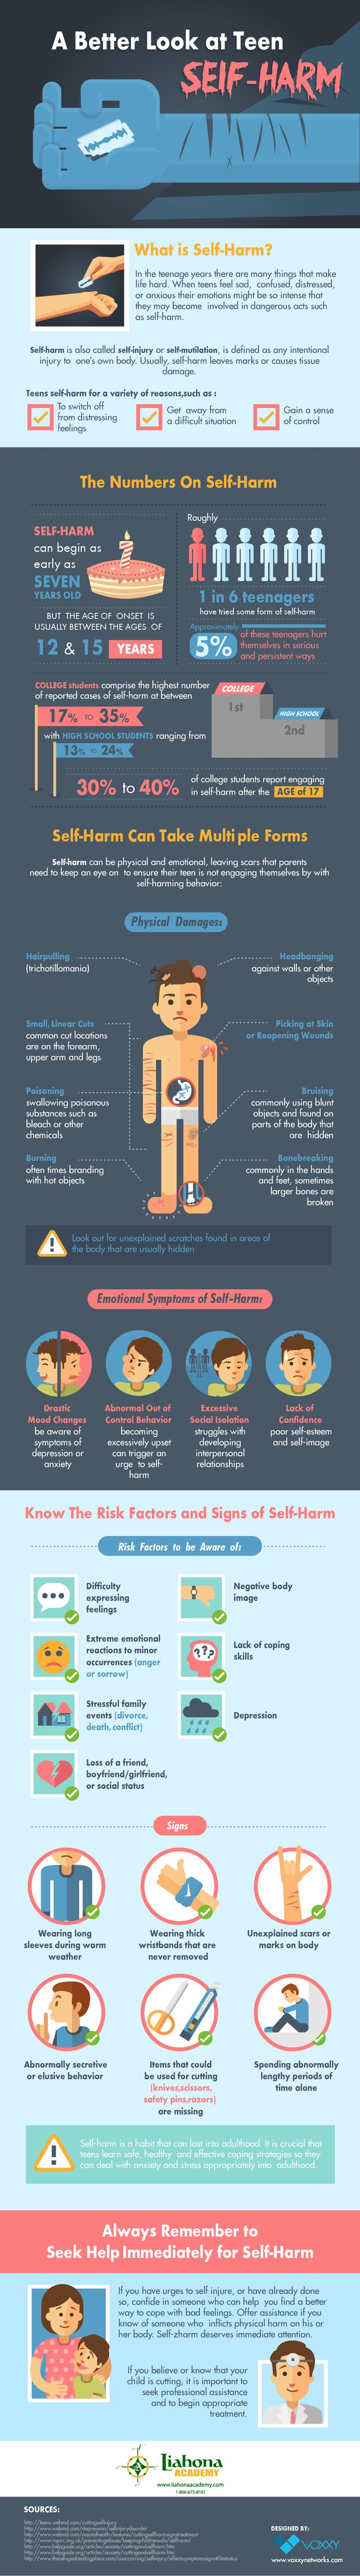 A Better Look at Teen Self-Harm - Infographic  Learn more about the dangers of self-harm at Liahona Academy